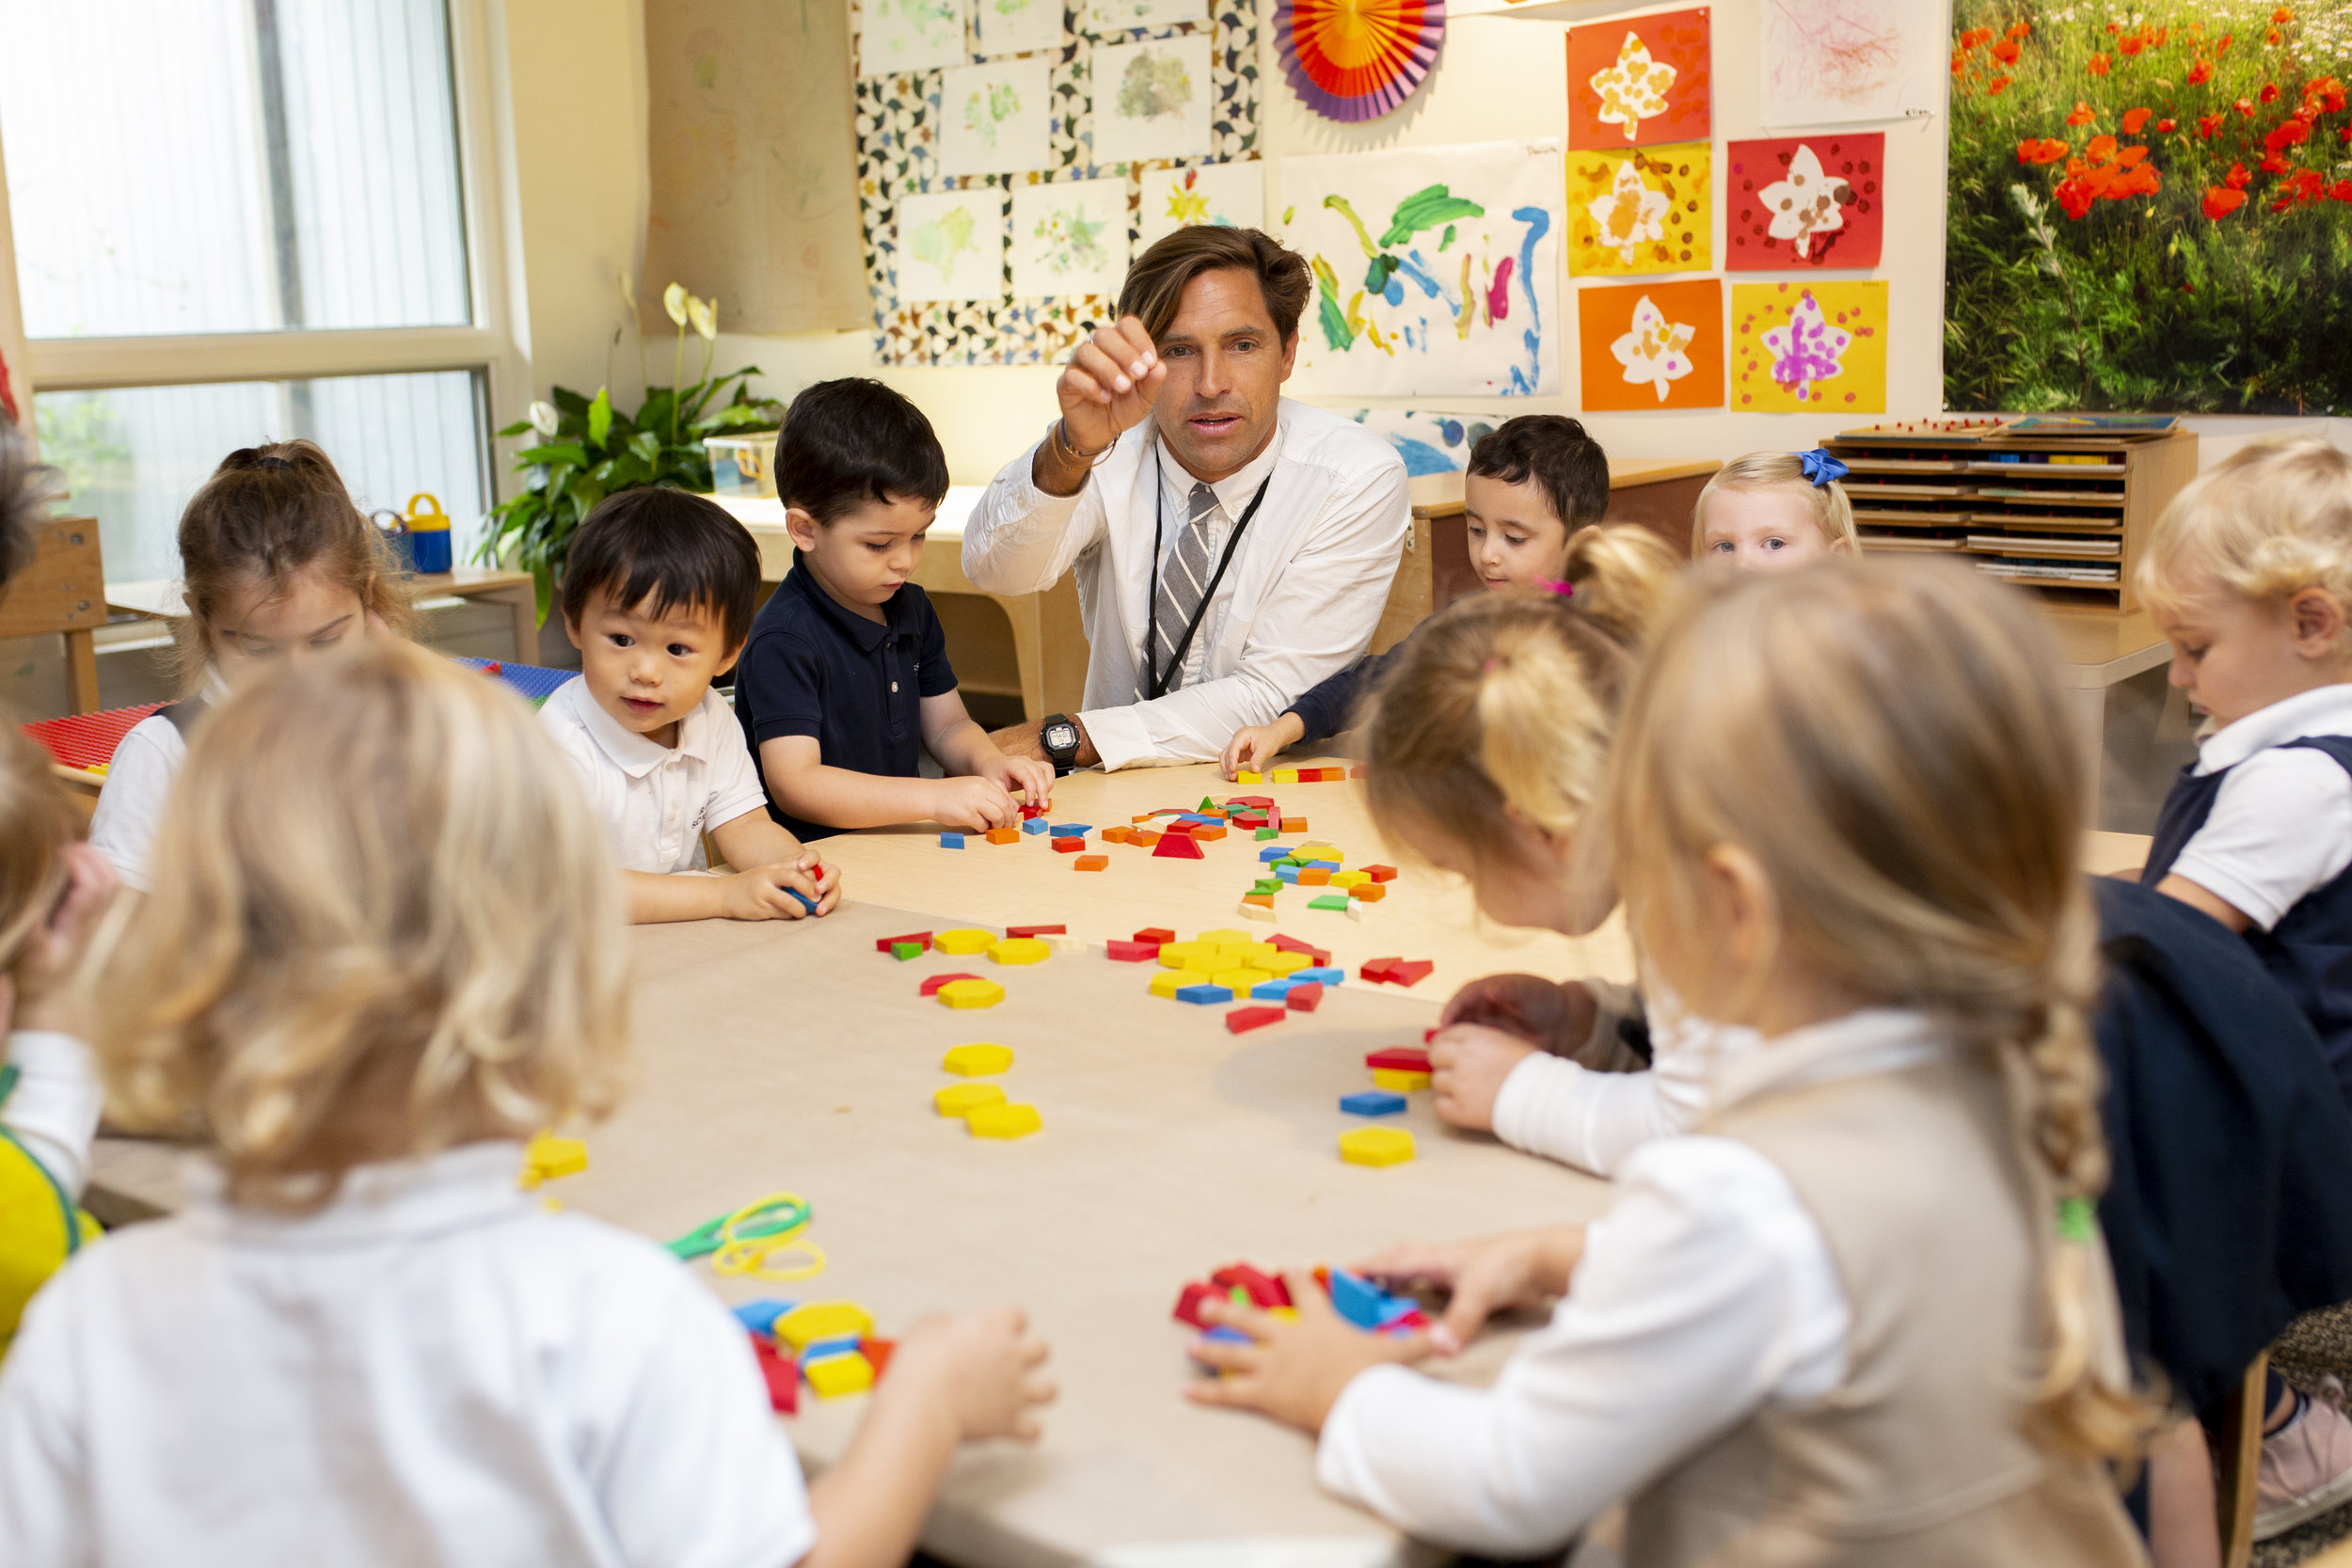 Ross Early Childhood teacher with nursery students engaged in hands-on learning using colorful wooden blocks.